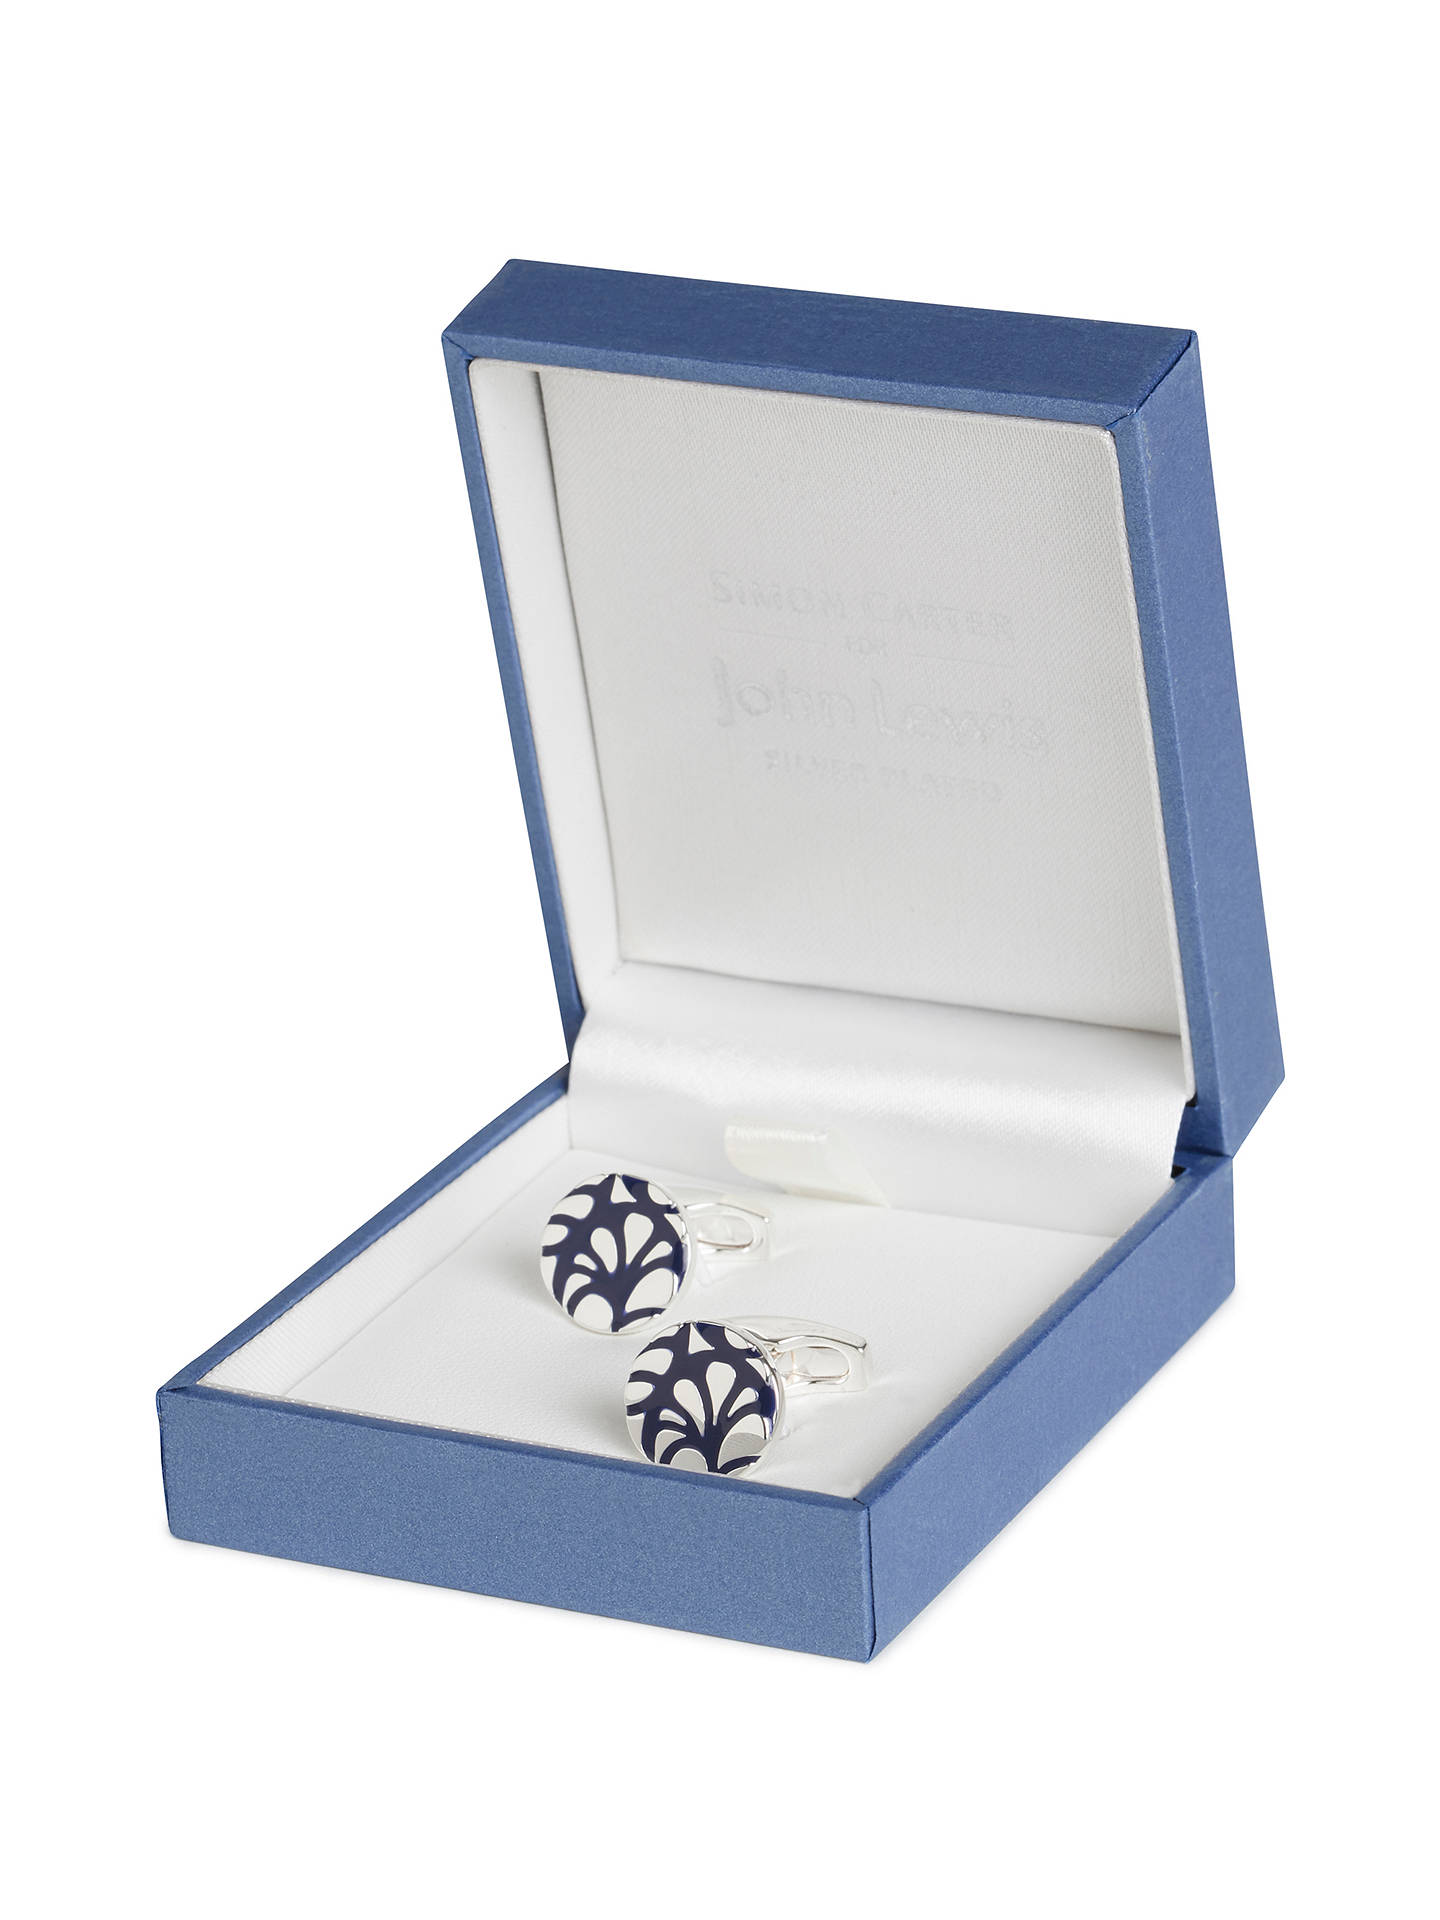 BuySimon Carter for John Lewis Silver Plated Round Embossed Cufflinks, Navy Online at johnlewis.com